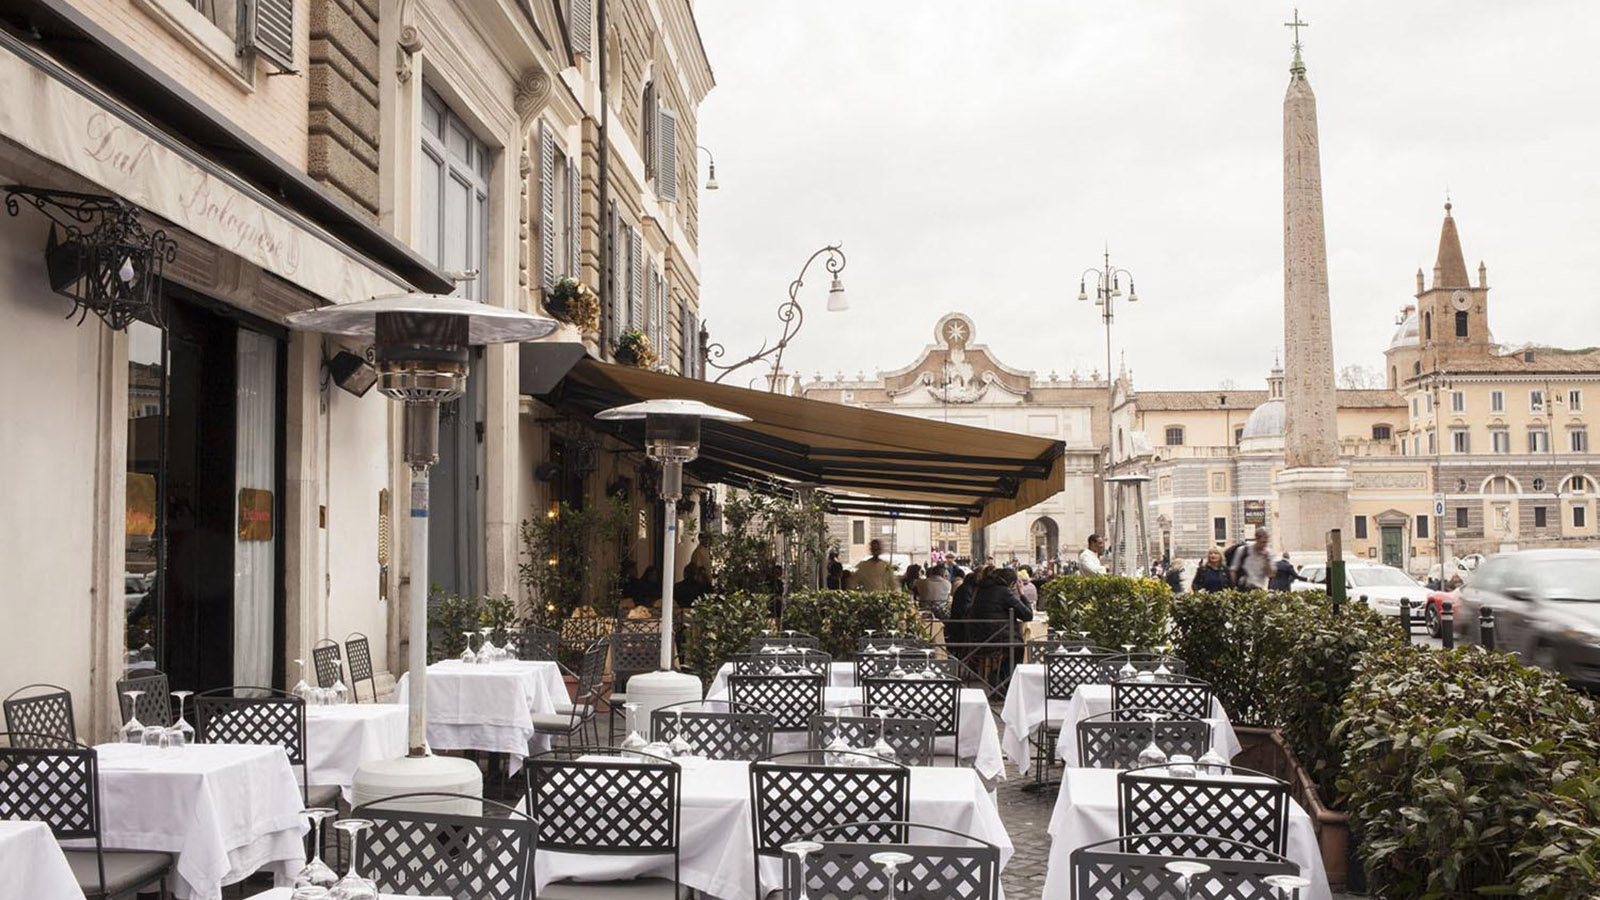 Bistrot Ristorante Rome S Outdoor Restaurants The Best Al Fresco Dining Cnn Travel